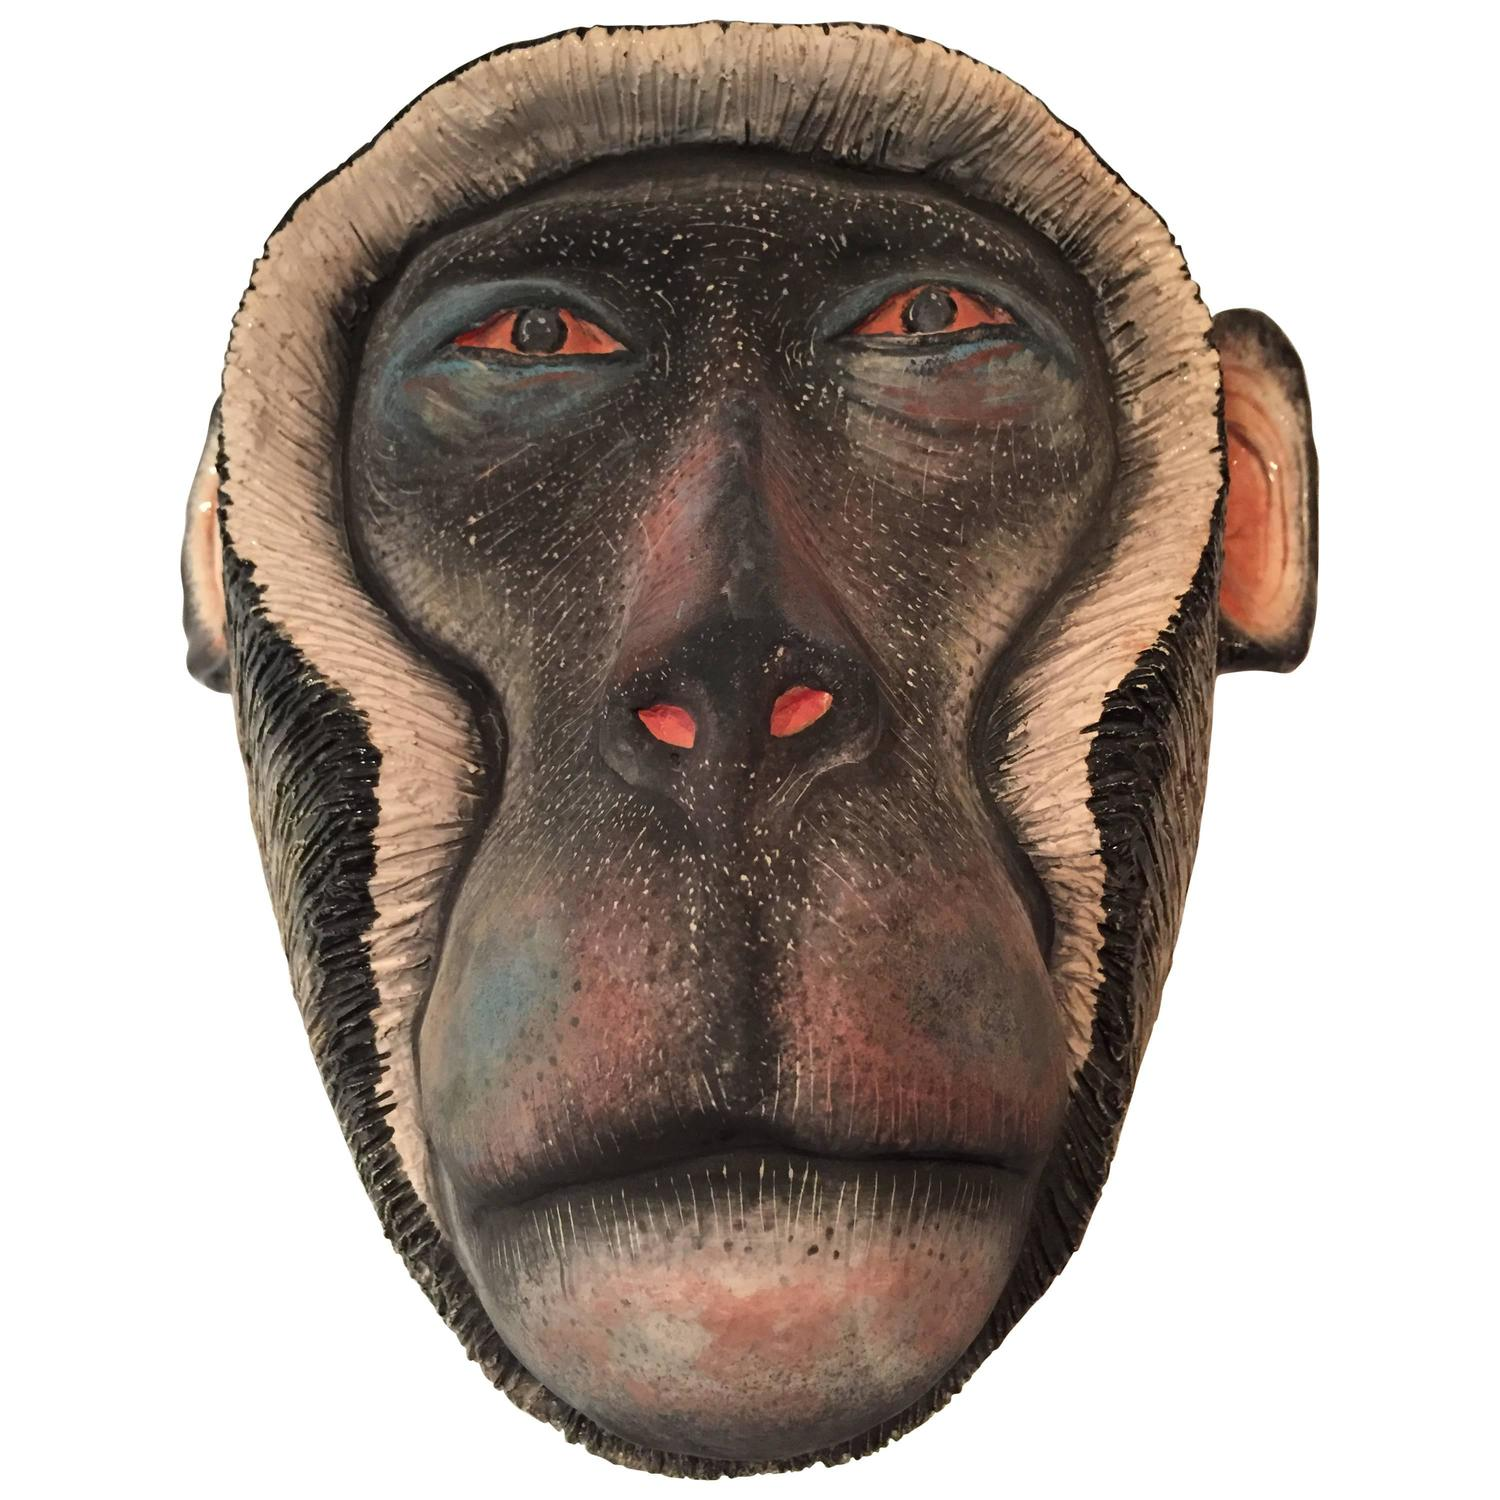 Monkey Mask Ceramic Sculpture By Ardmore From South Africa